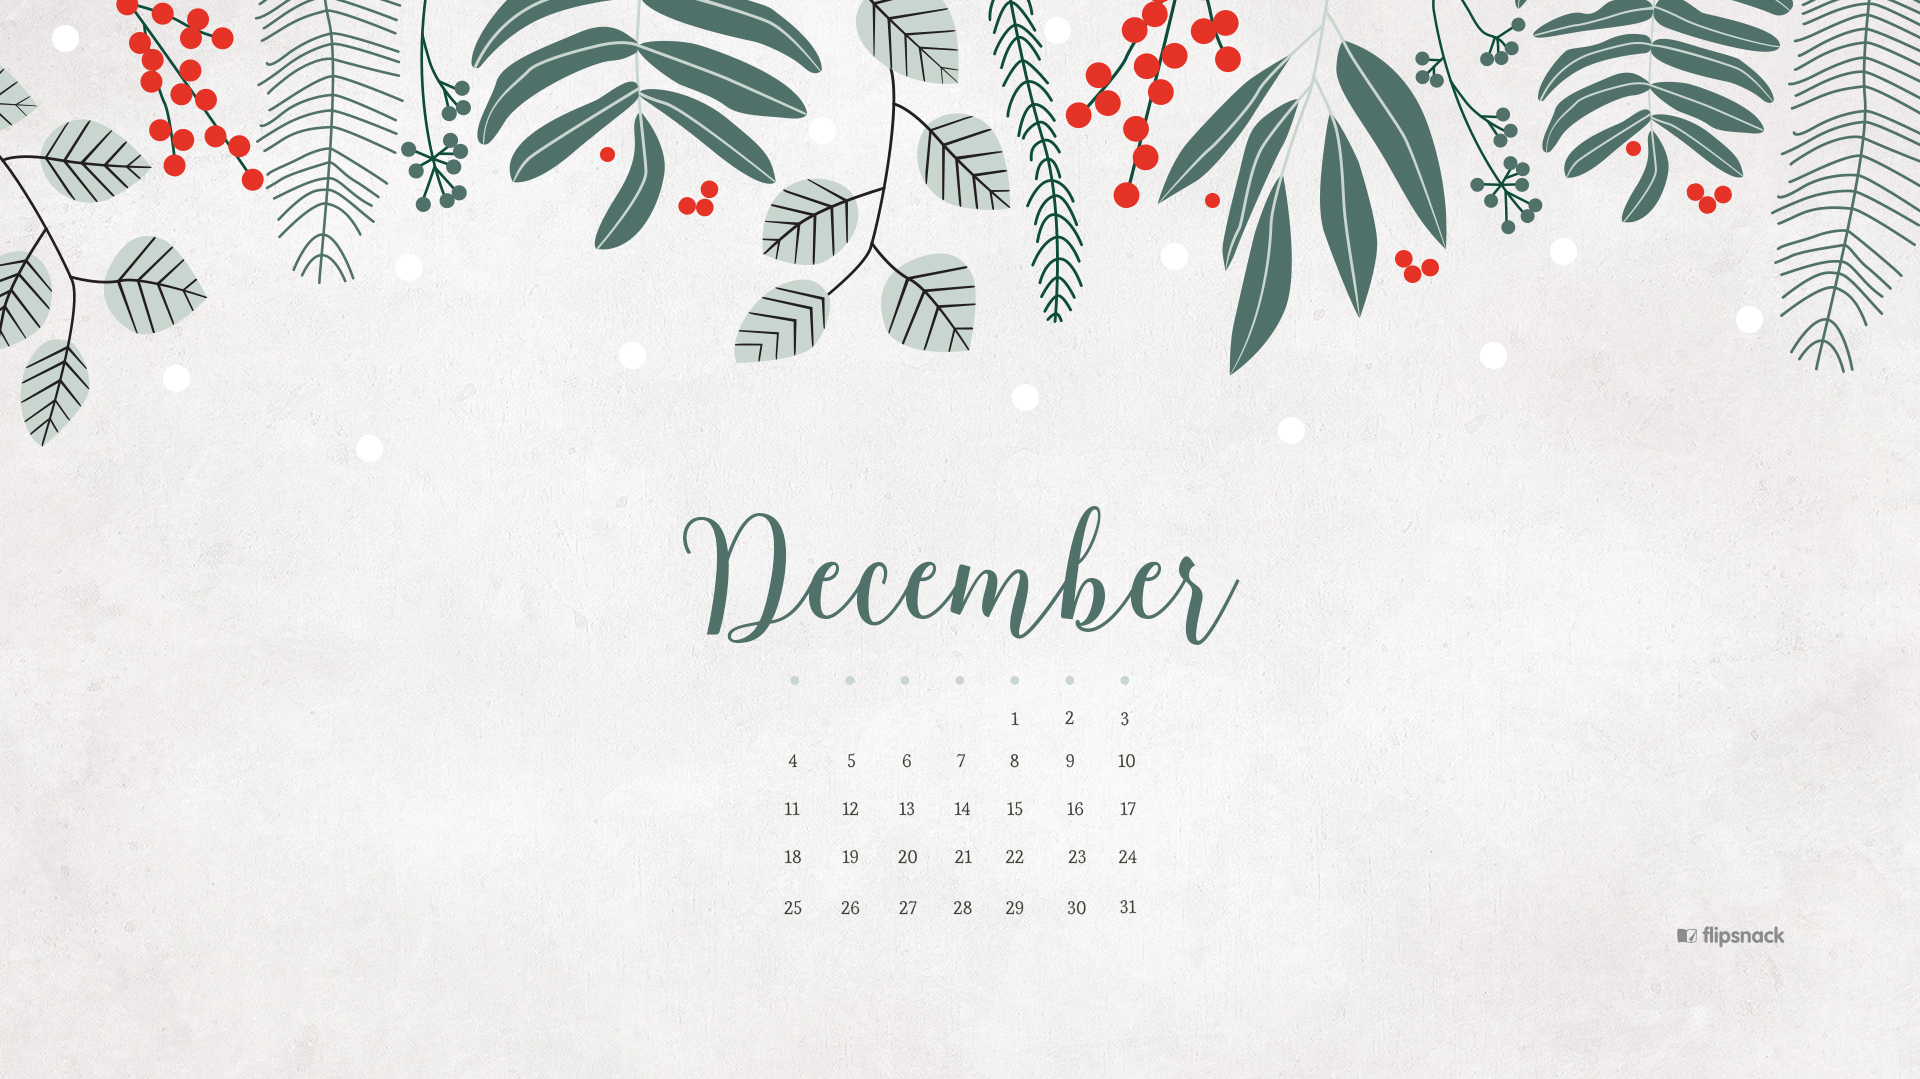 Calendar Background For Desktop : December calendar backgrounds desktop background